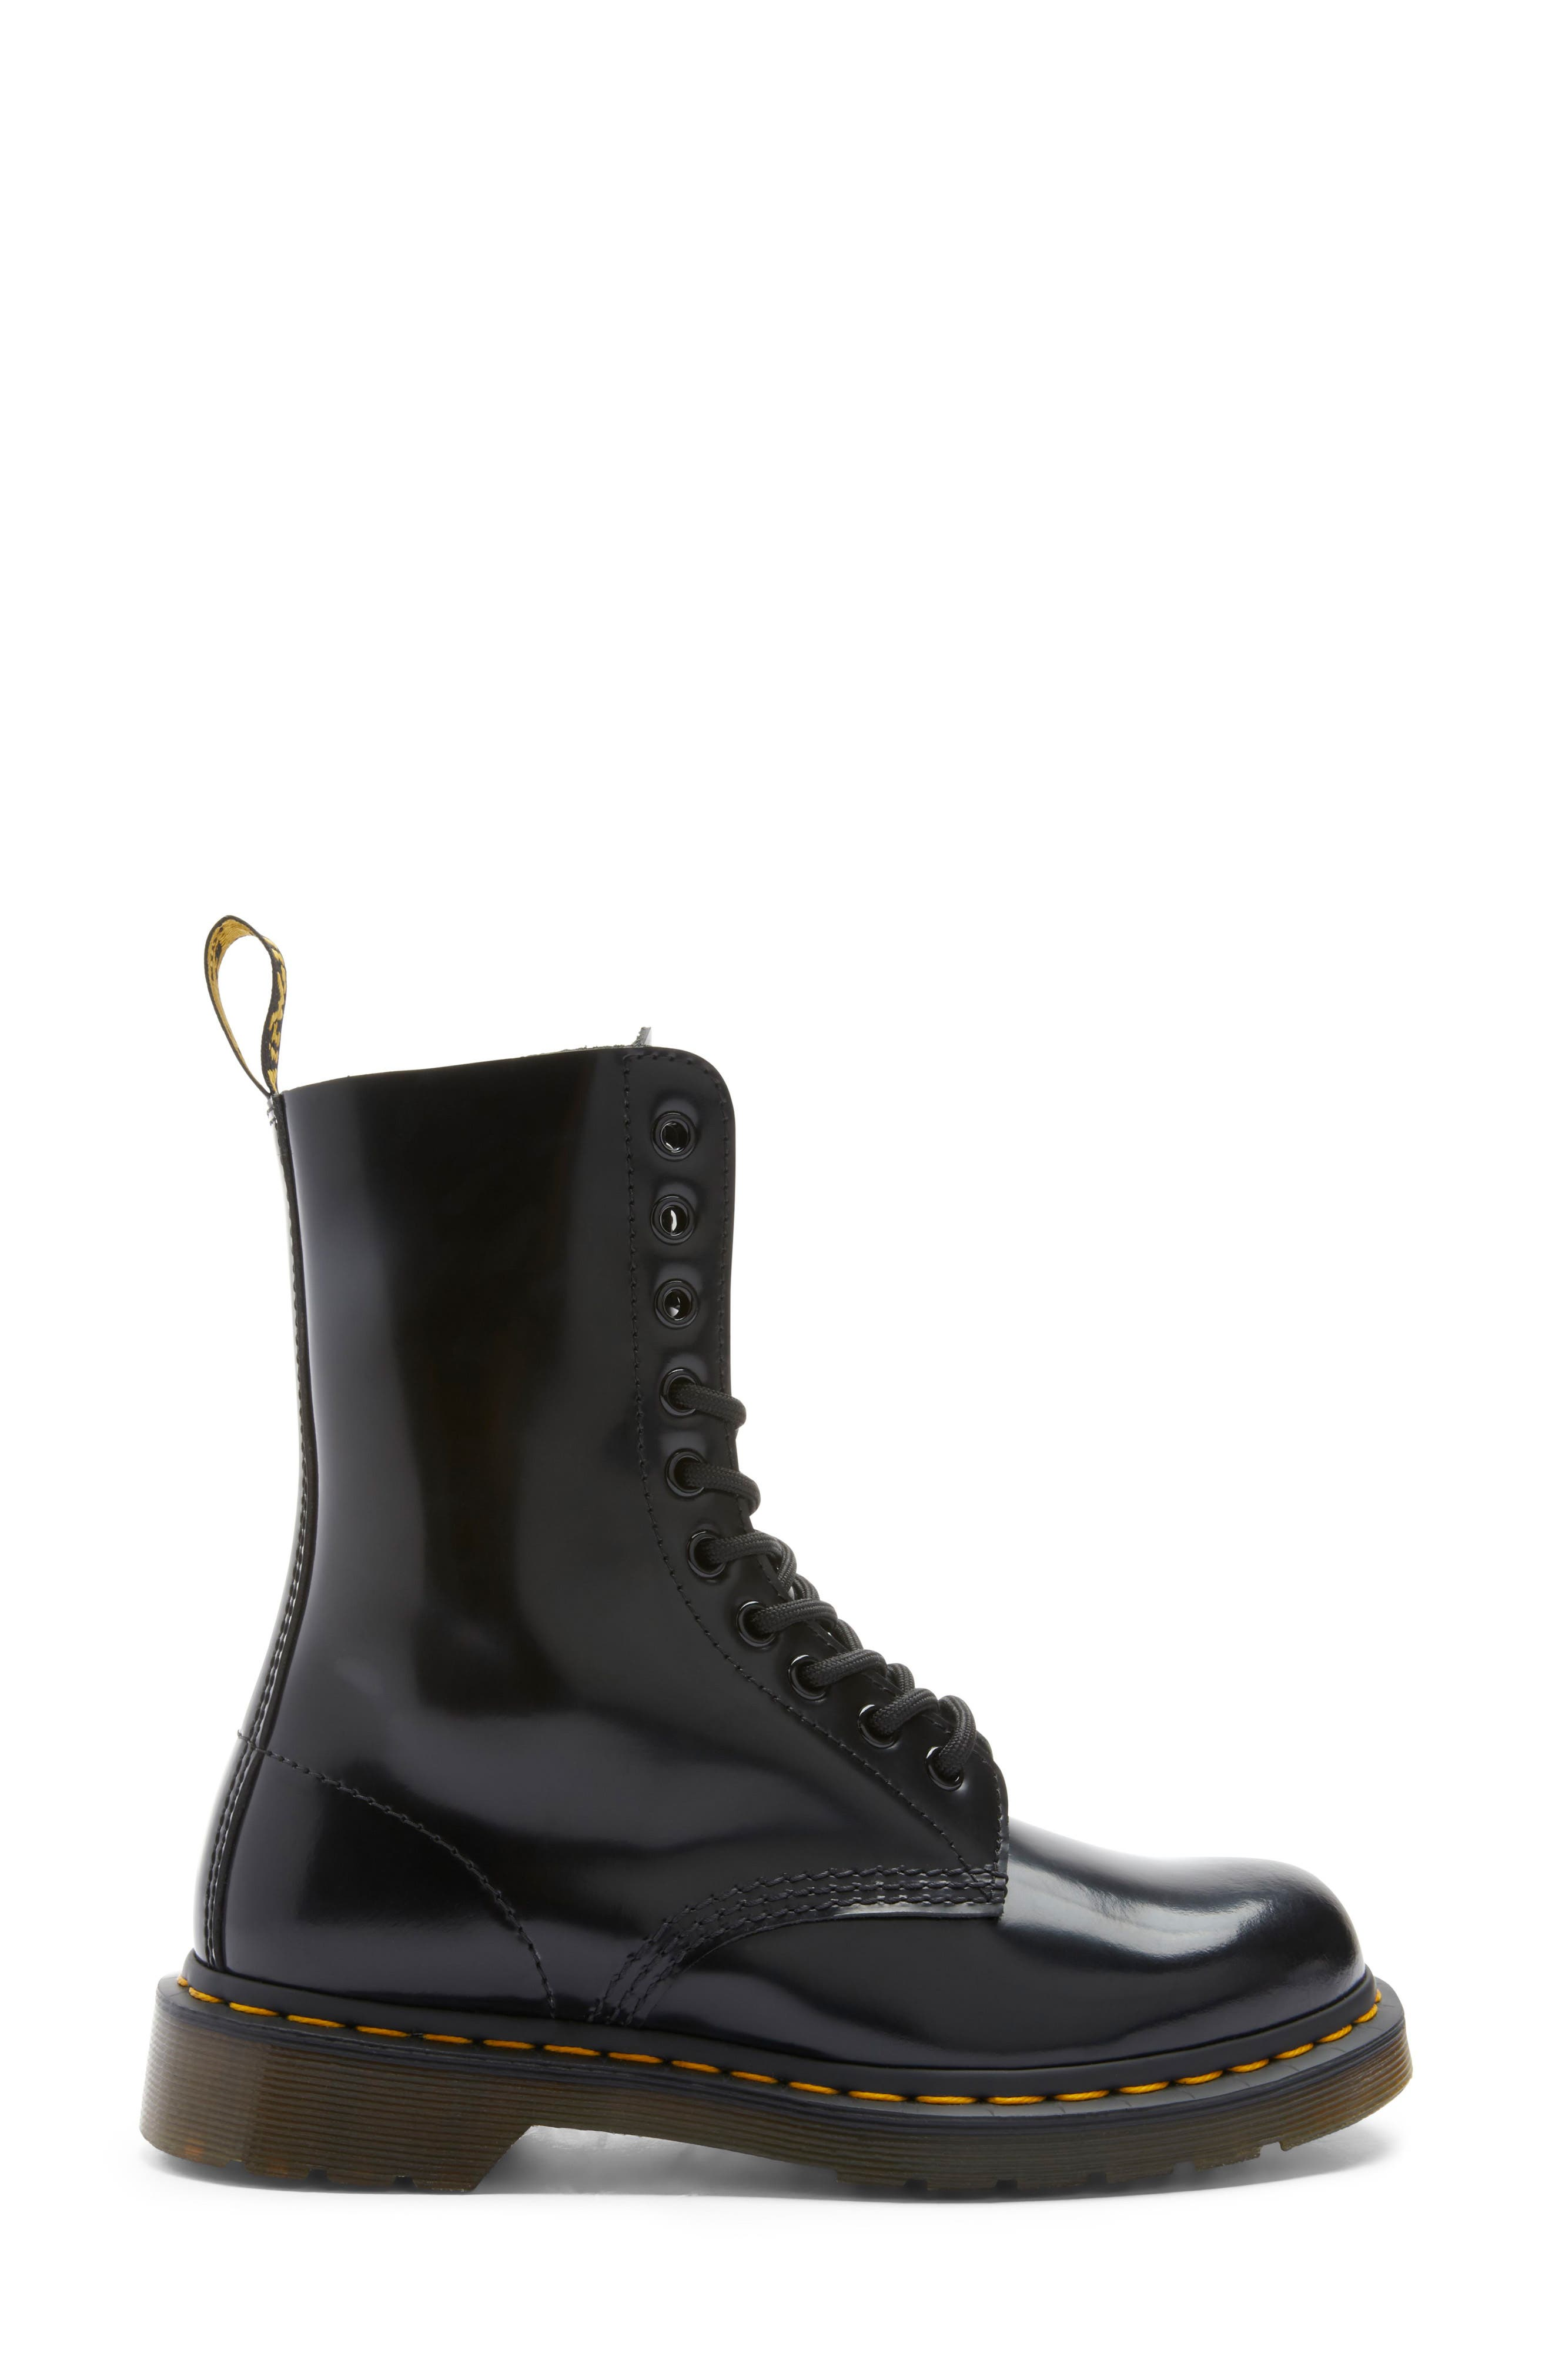 MARC JACOBS, Dr. Martens x MARC JACOBS Boot, Alternate thumbnail 3, color, BLACK